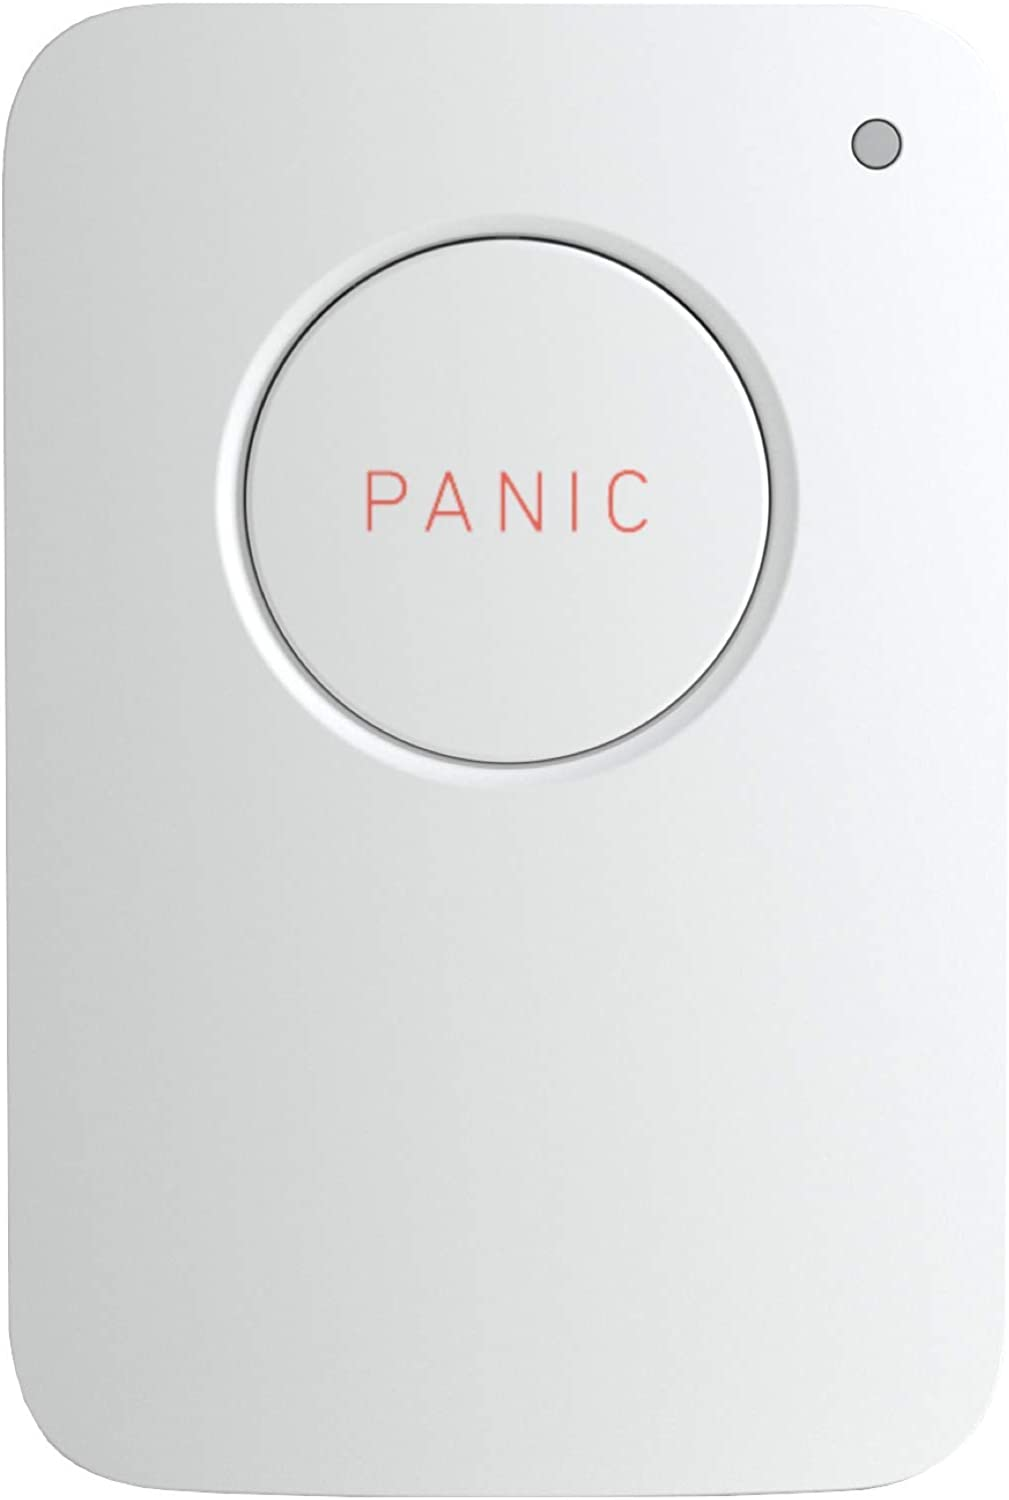 SimpliSafe Panic Button - Built-in Silent Panic Feature - Compatible with SimpliSafe Home Security System (New Gen)